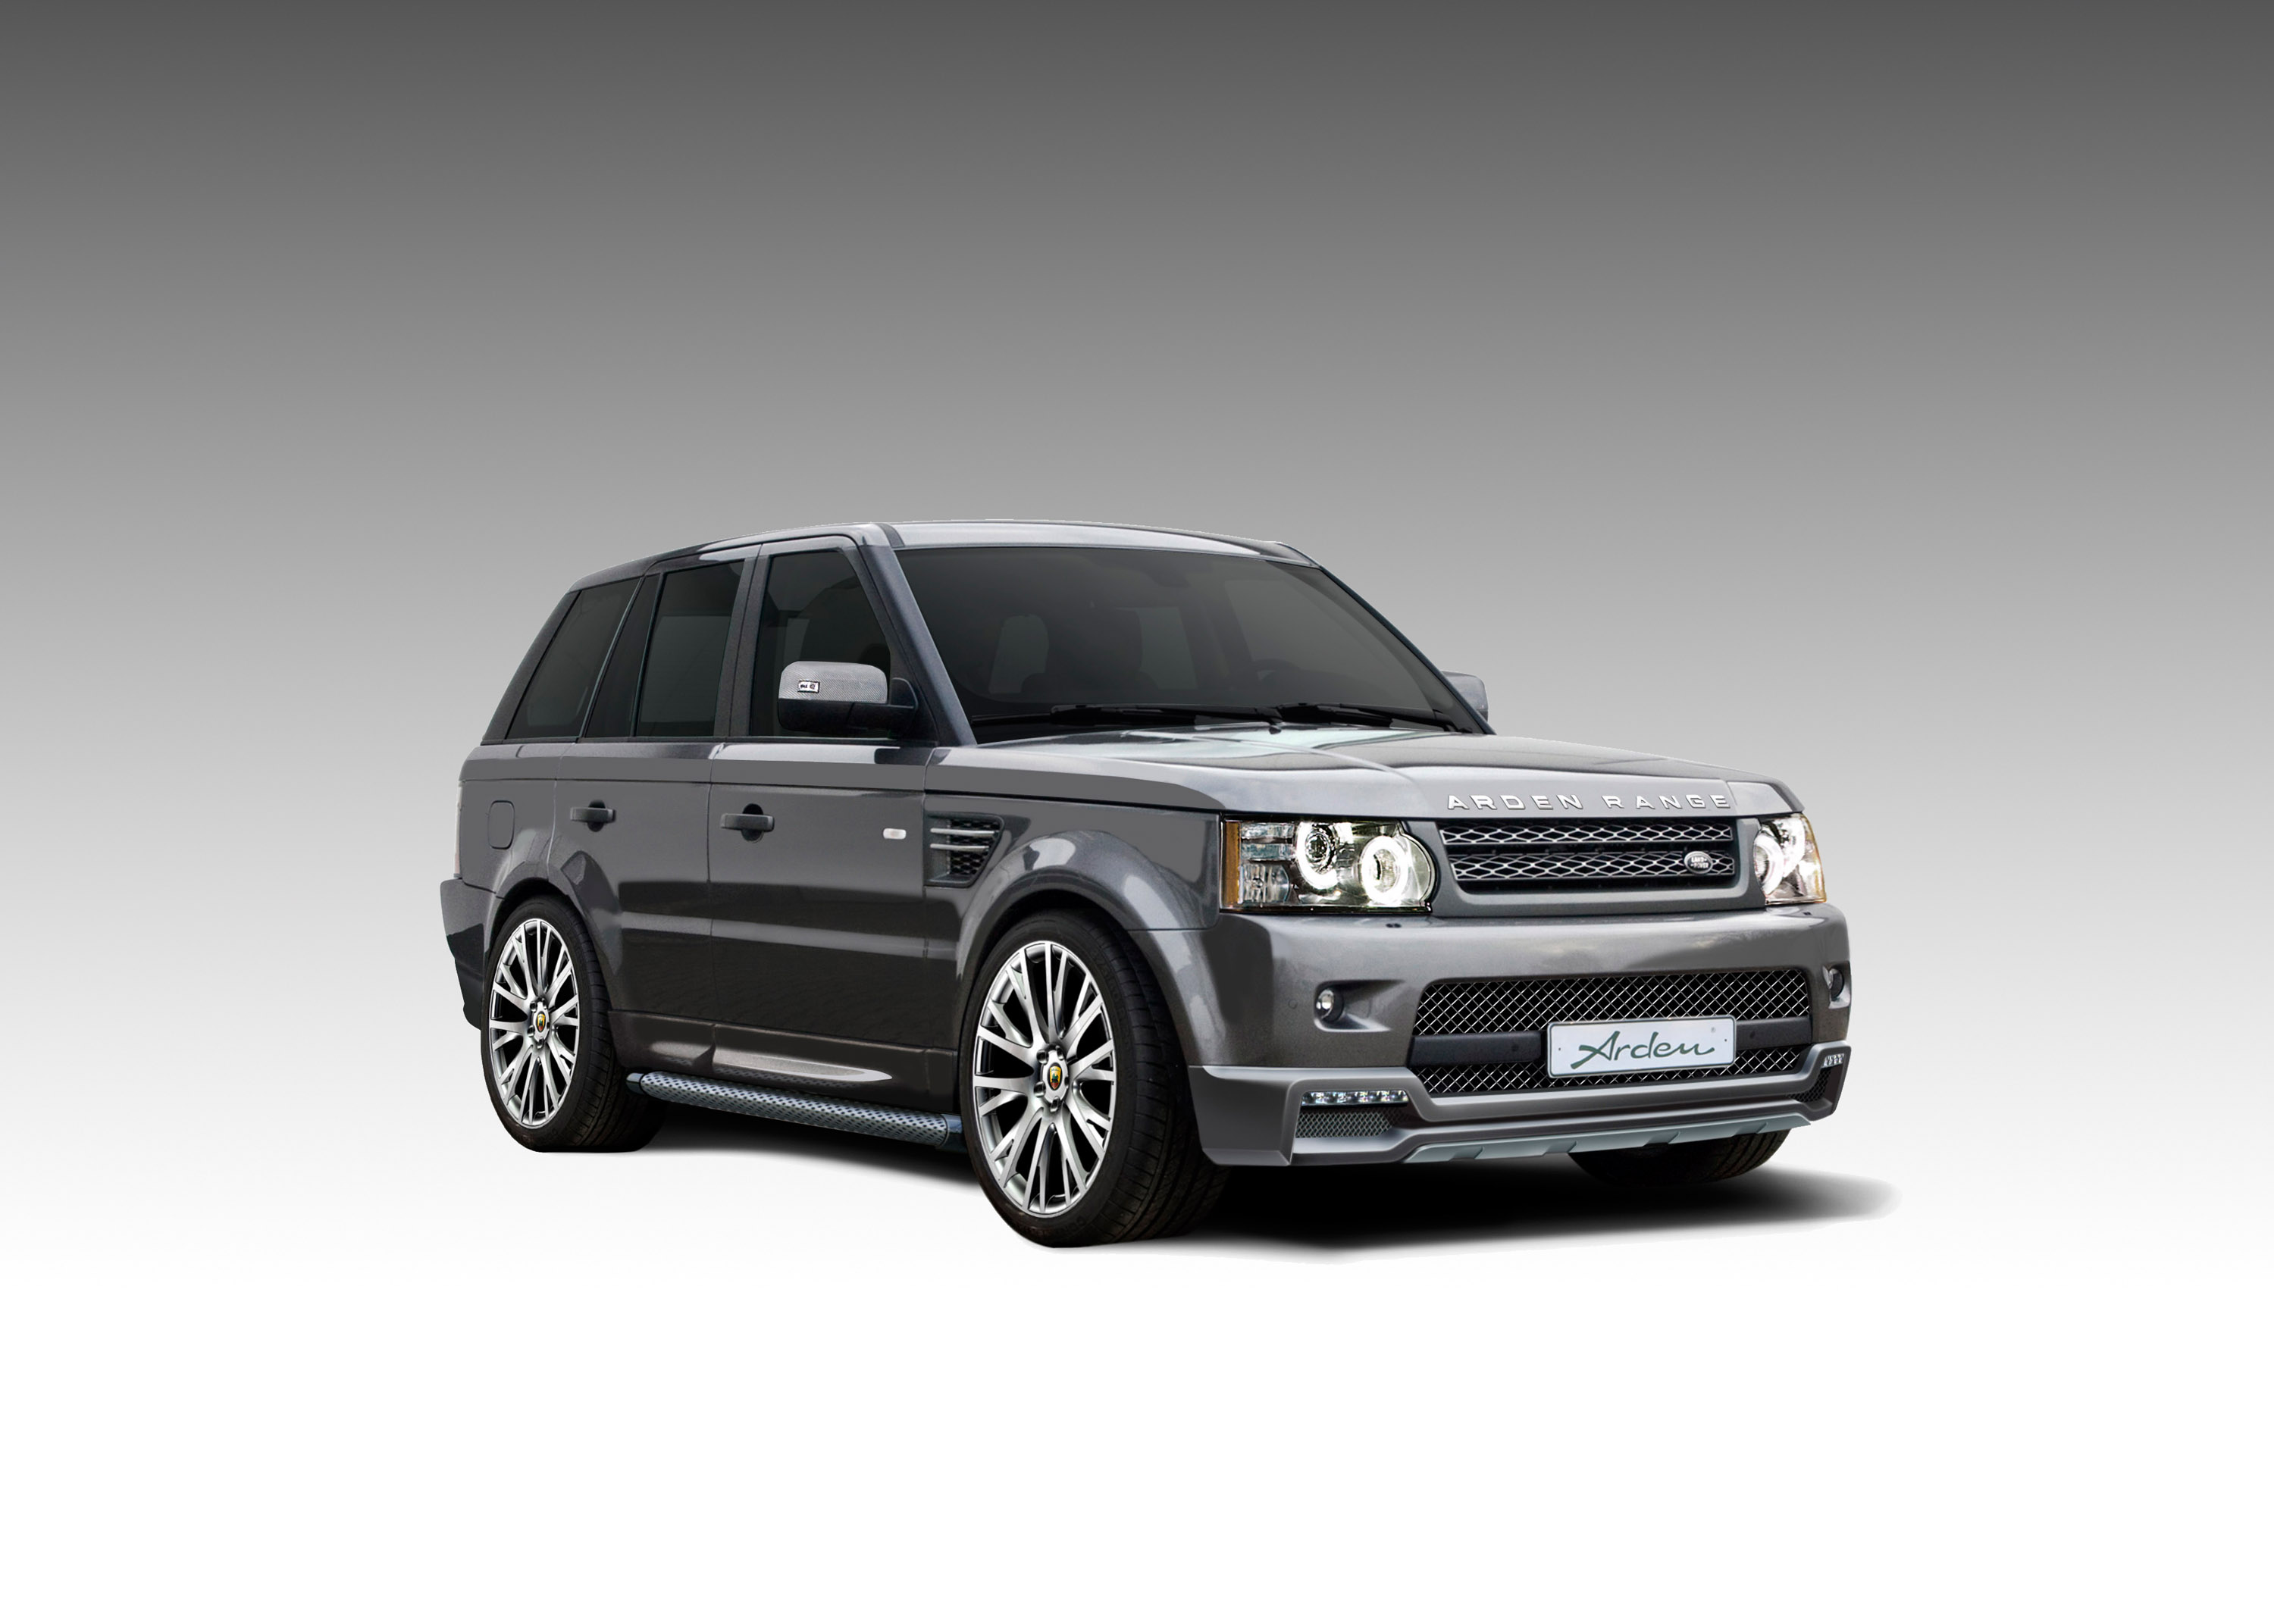 arden to premiere its 2010 range rover sport ar5. Black Bedroom Furniture Sets. Home Design Ideas